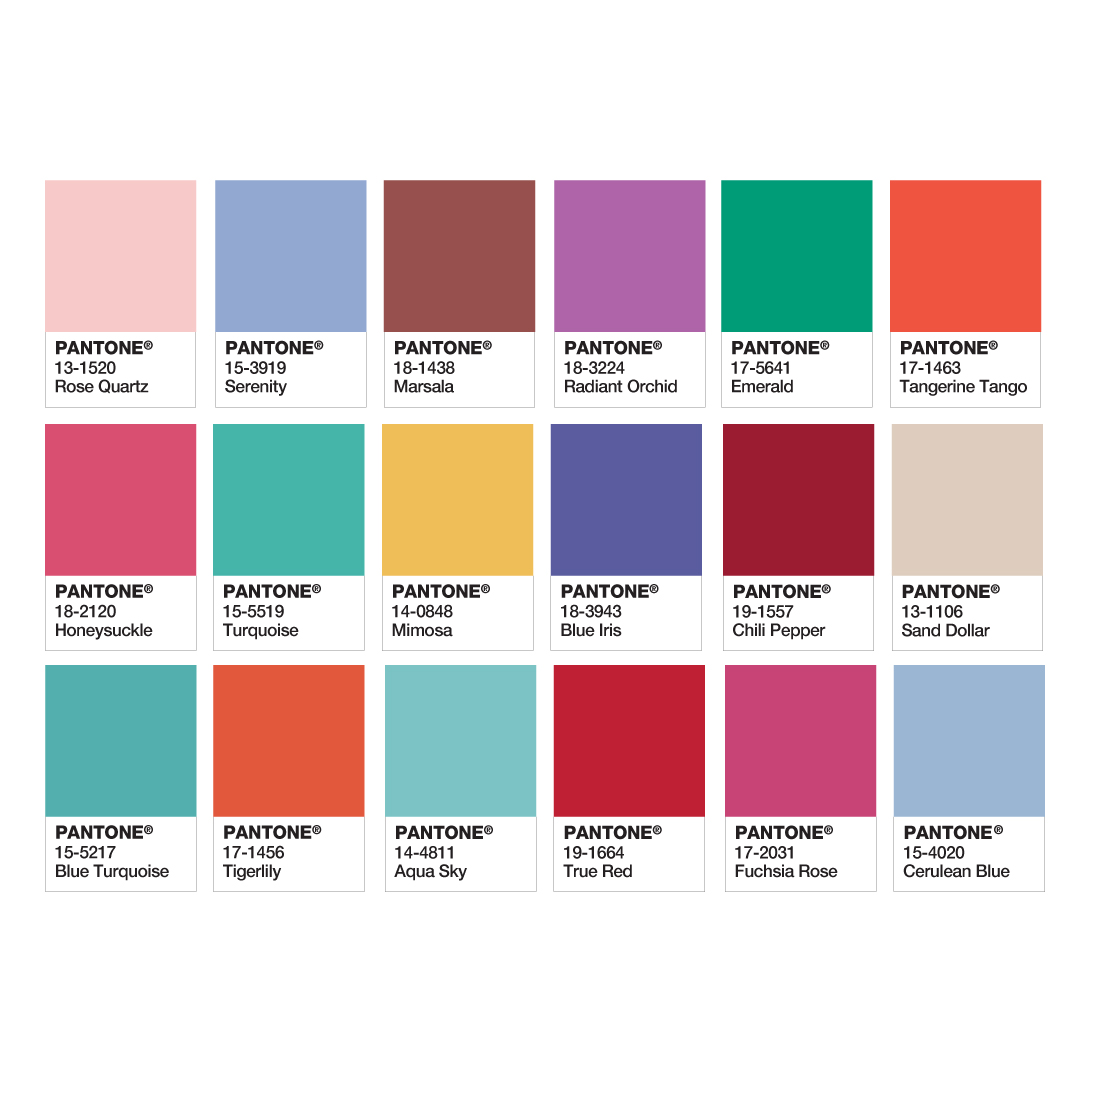 Pantone Colors of the Year from 200-2016